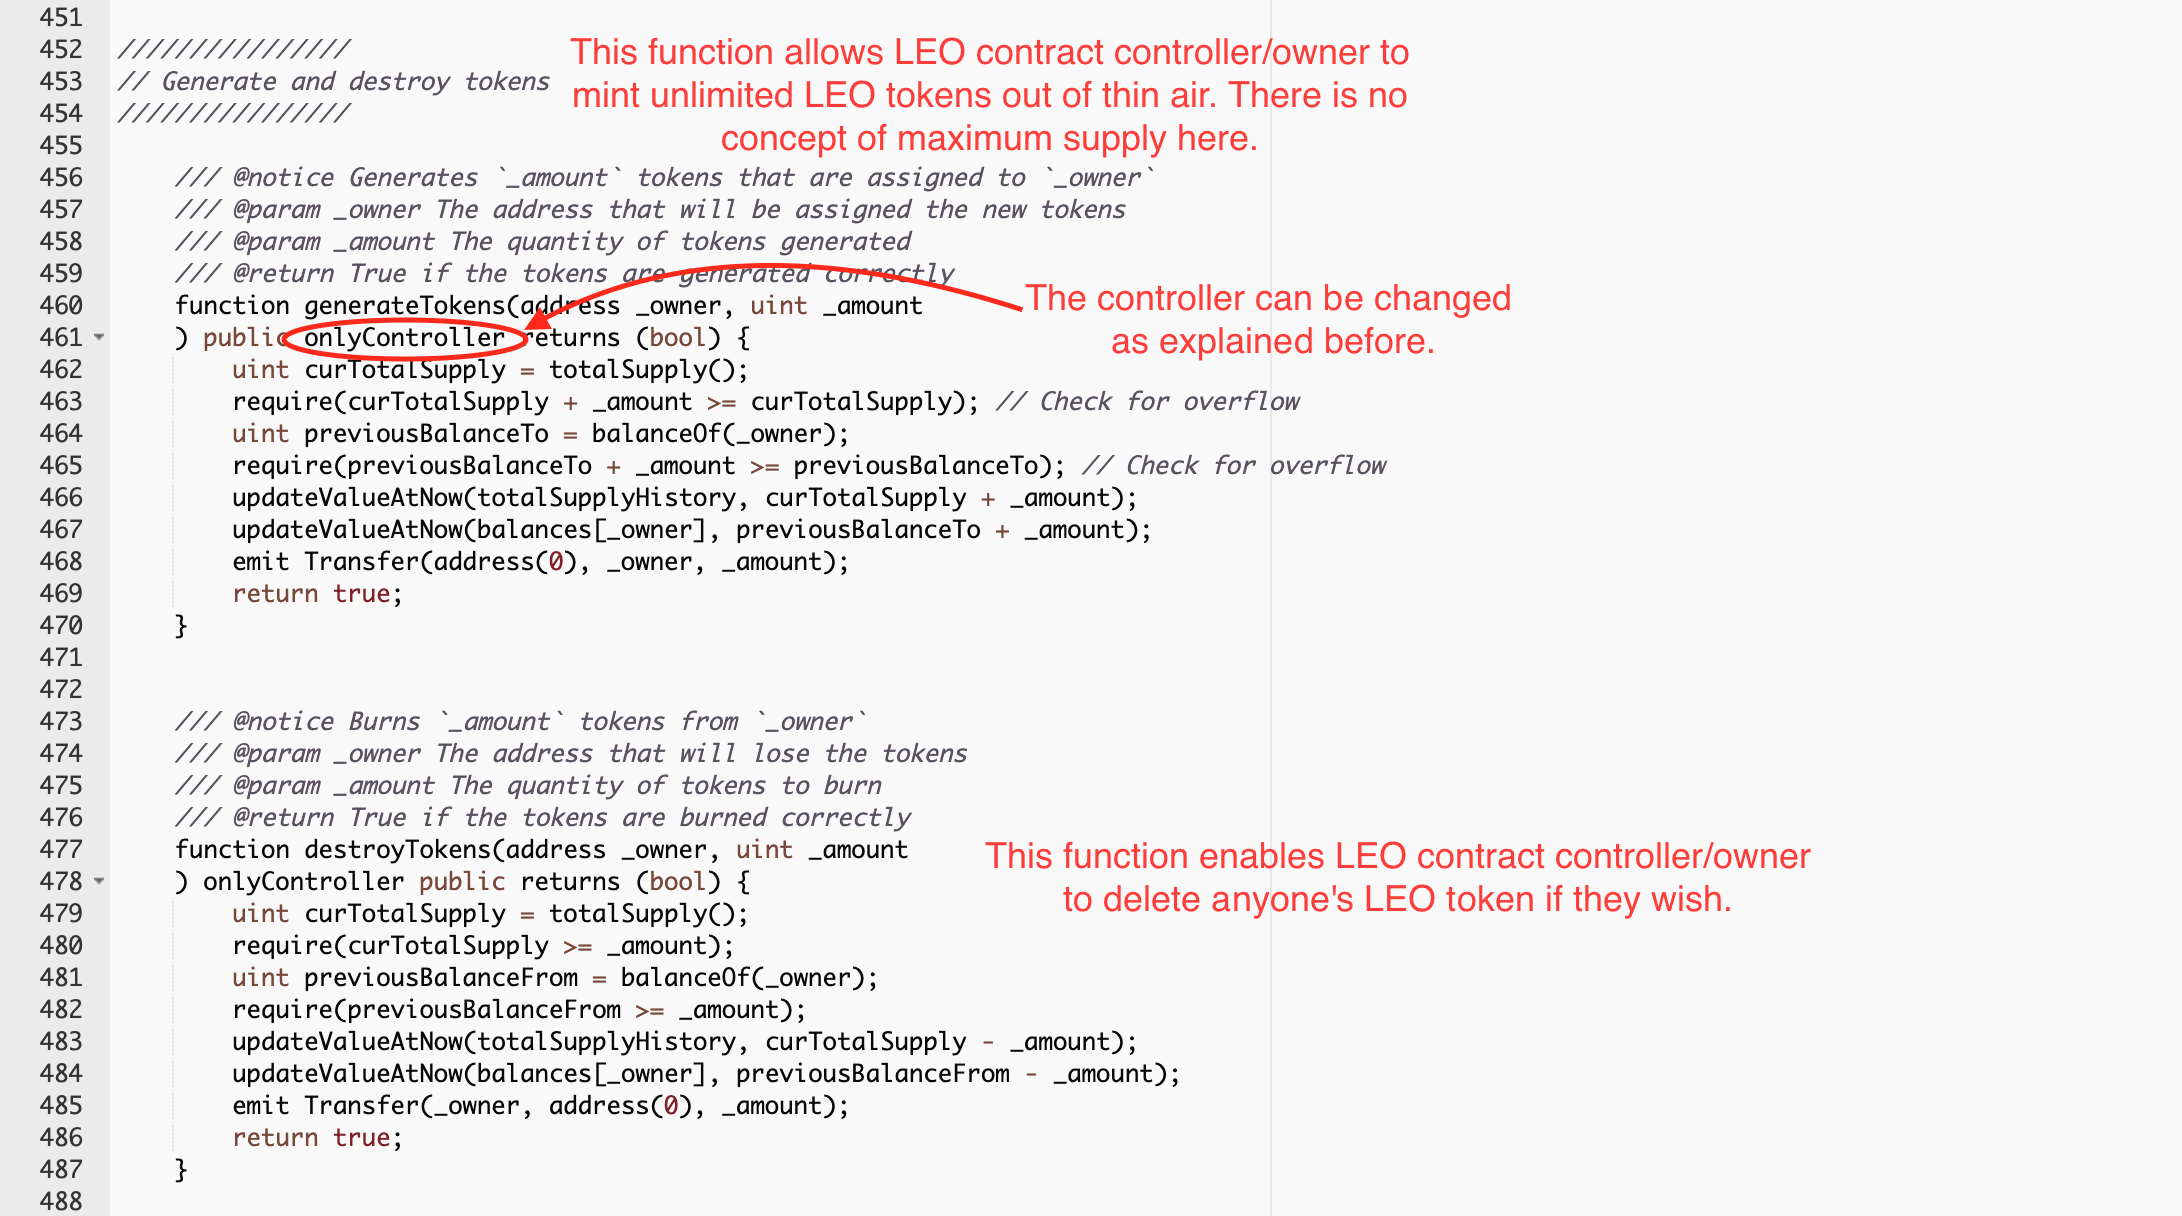 LEO contract The owner can burn your tokens and mint unlimited new tokens